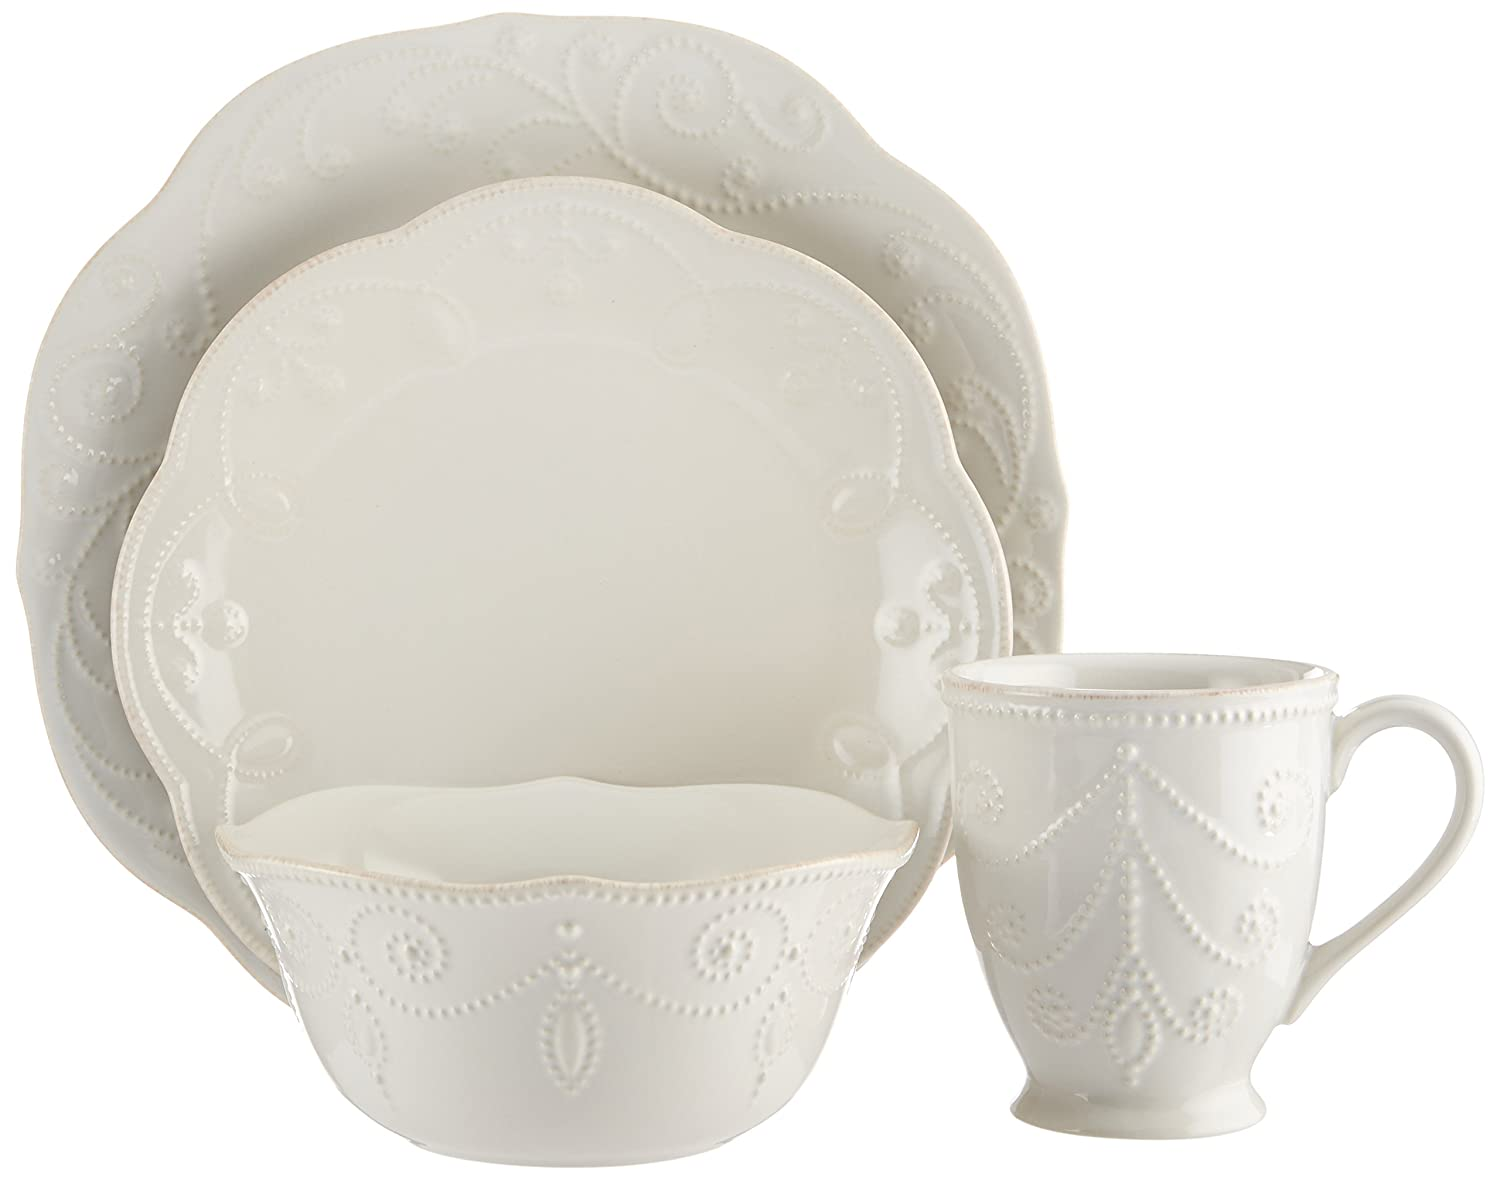 Christmas Tablescape Décor - Lenox French Perle White 4-Pc Place Setting  sc 1 st  Christmas Tablescape Decor & white china dinnerware